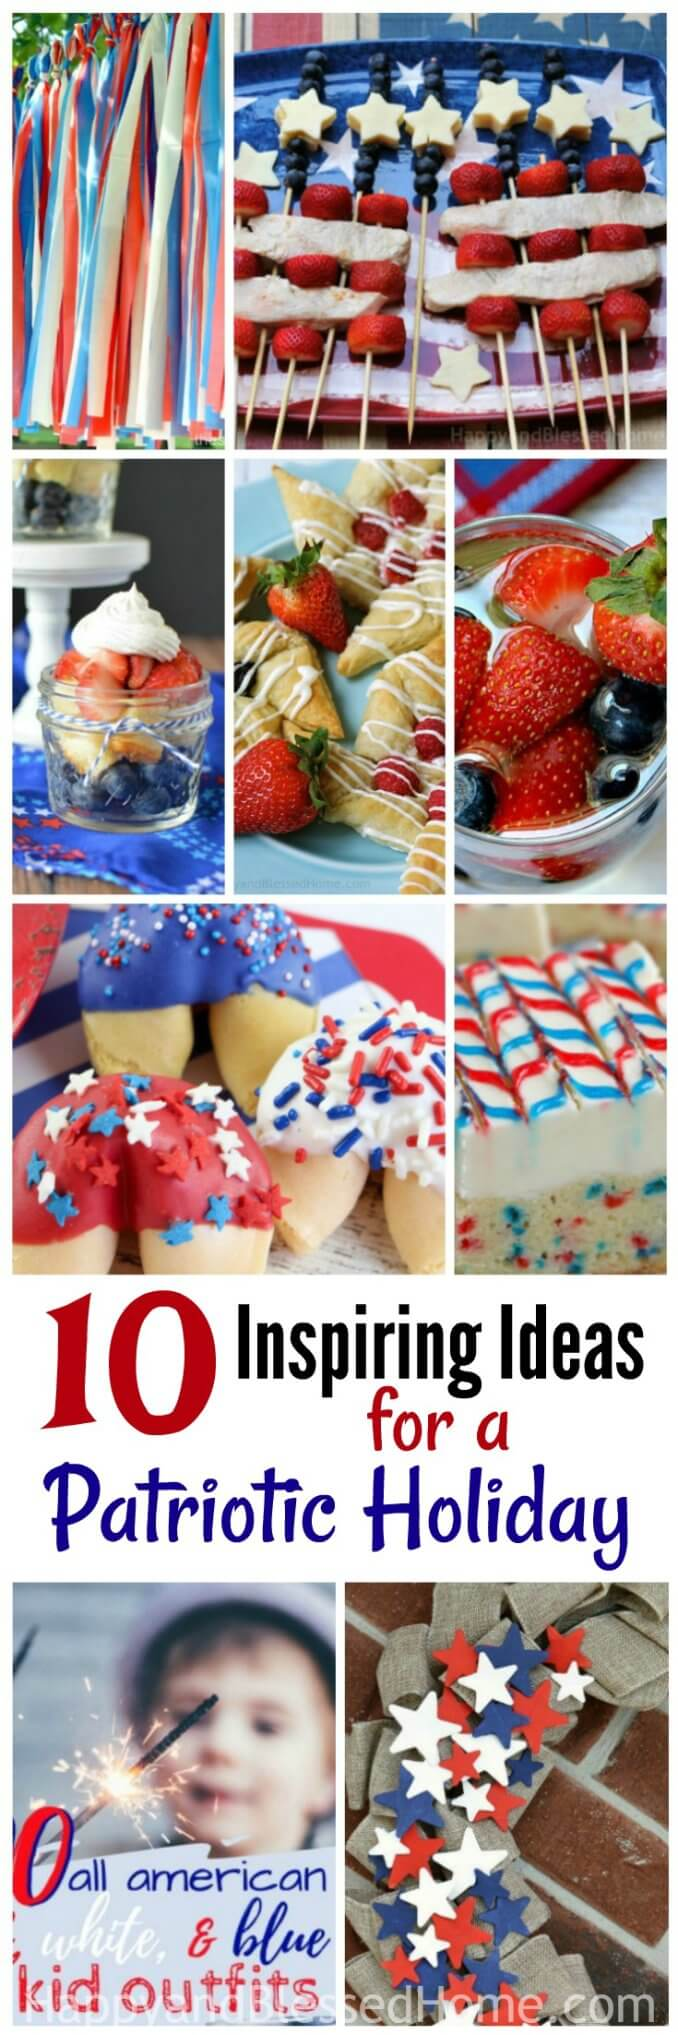 10 Inspiring Ideas for a Patriotic Holiday